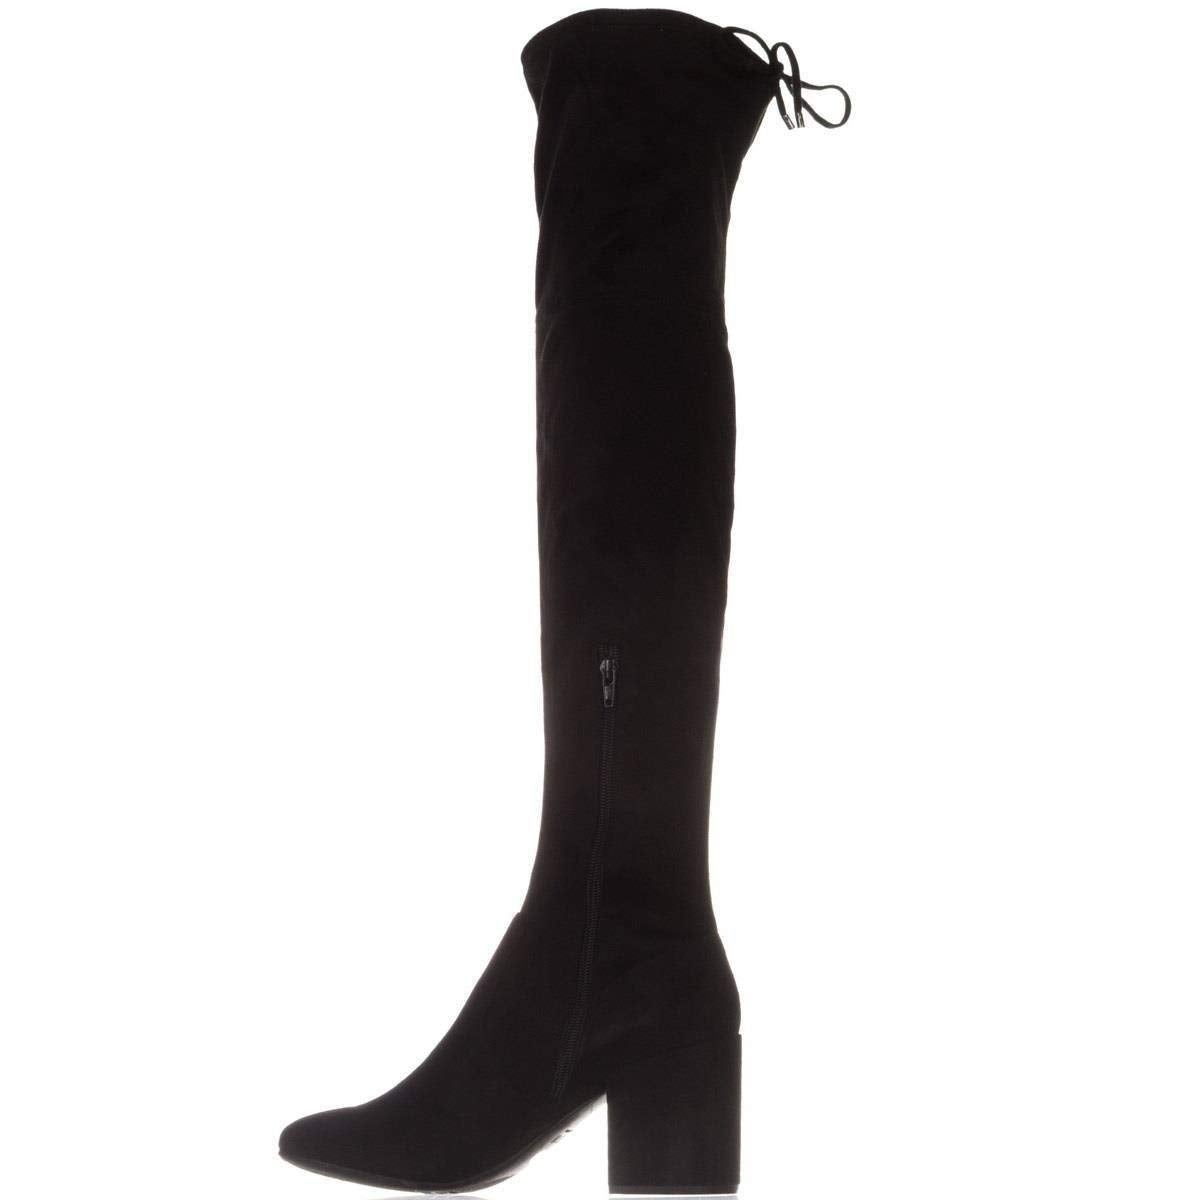 1bd9bf070ee Shop Bar III Womens Georgia Fabric Almond Toe Over Knee Fashion Boots -  Free Shipping On Orders Over  45 - Overstock - 24267085